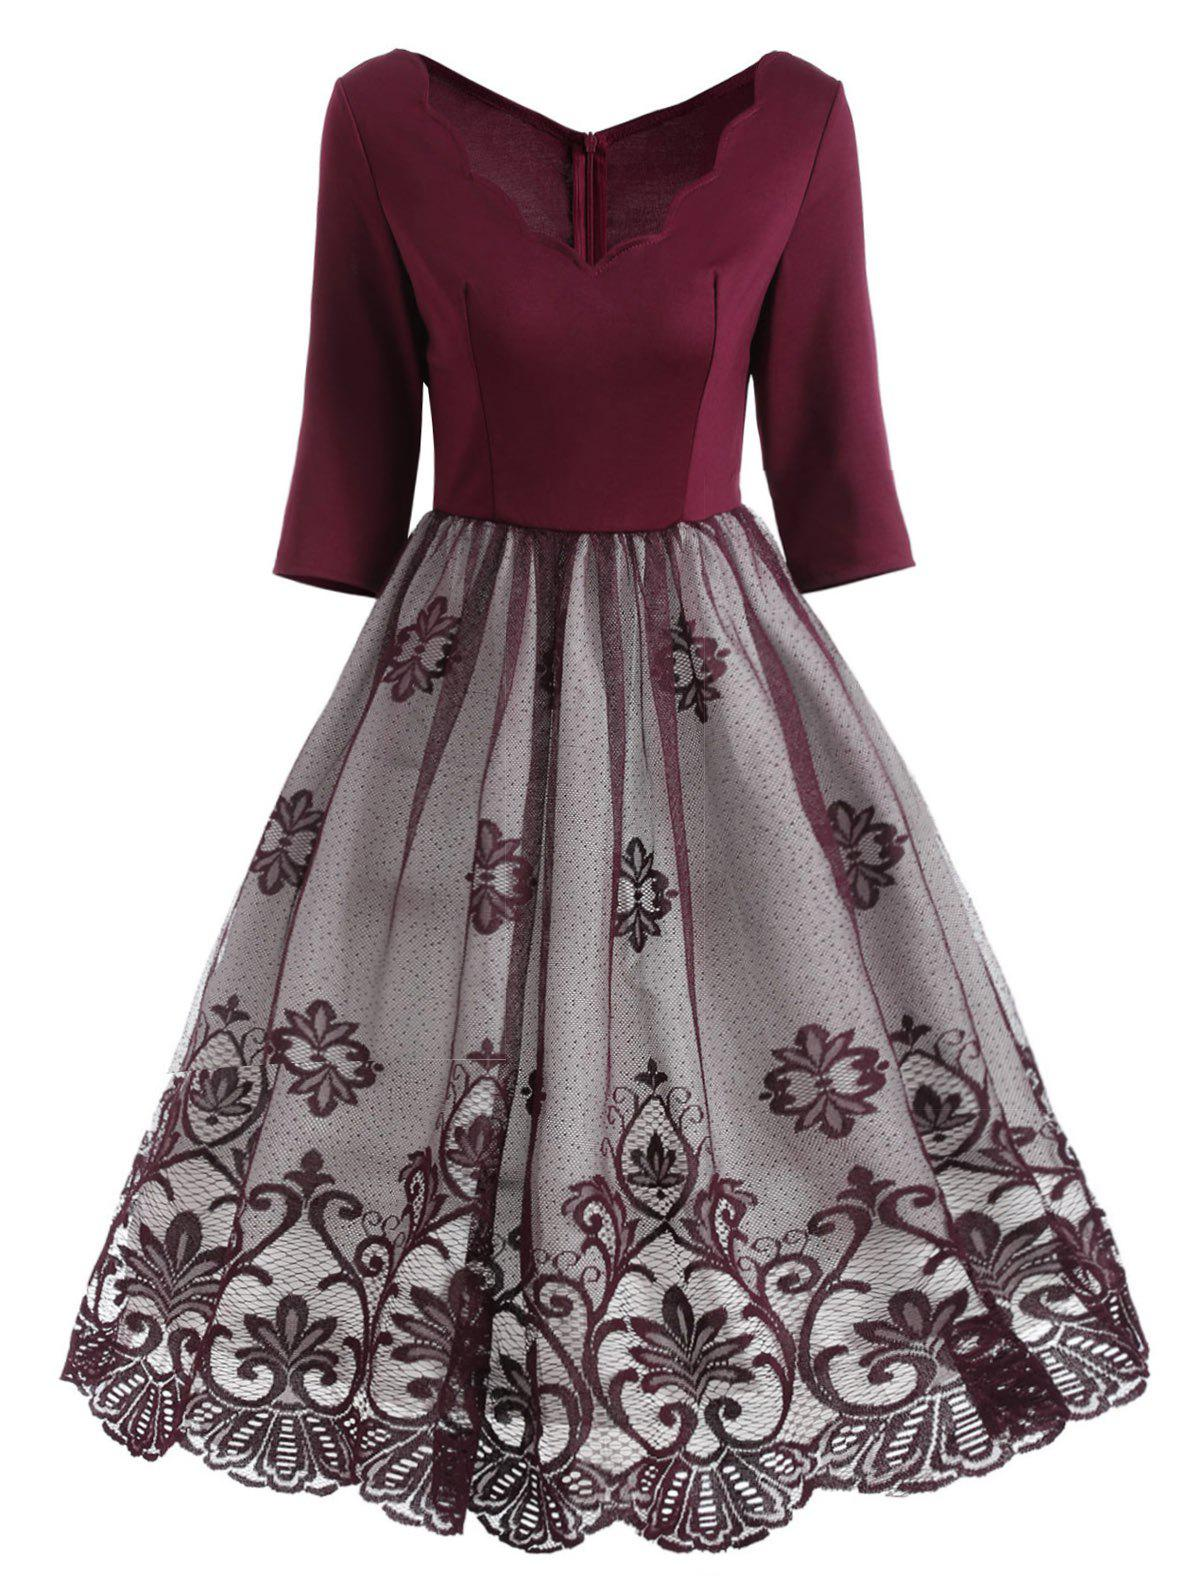 Floral Lace Panel V Neck Vintage Dress - WINE RED S